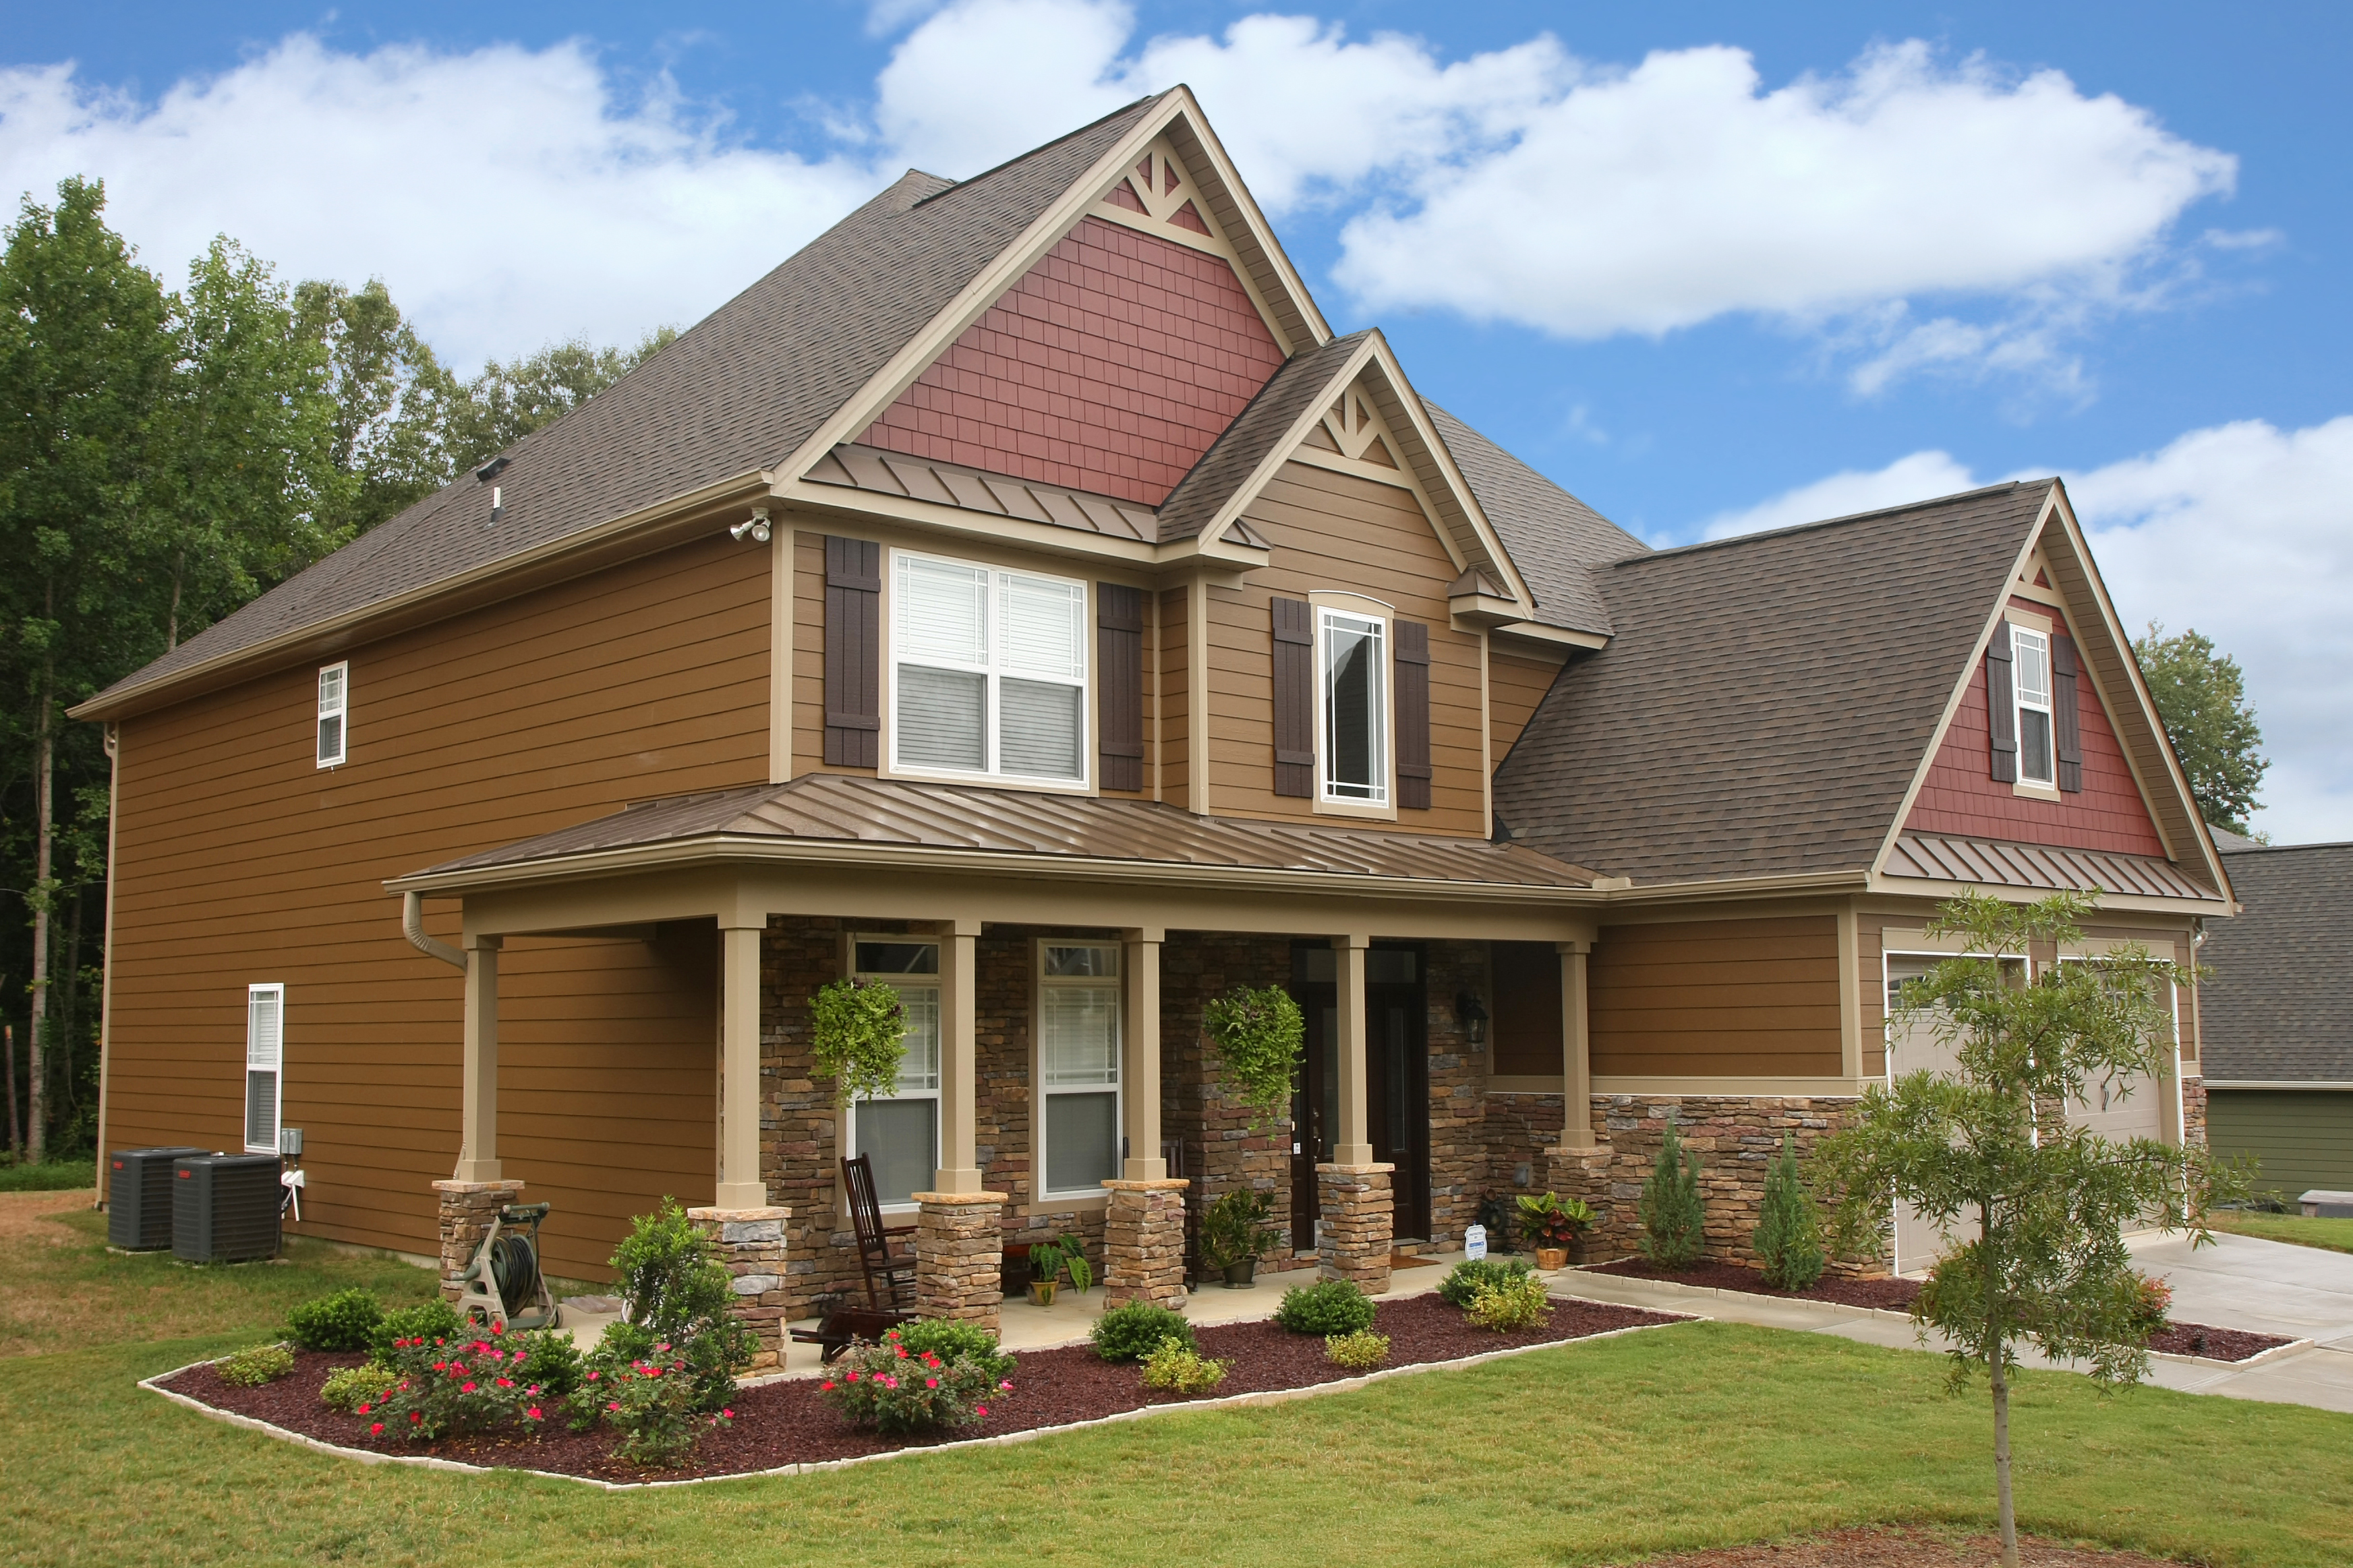 Virginia Roofing & Siding Company – Fiber Cement Siding/James Hardie Siding